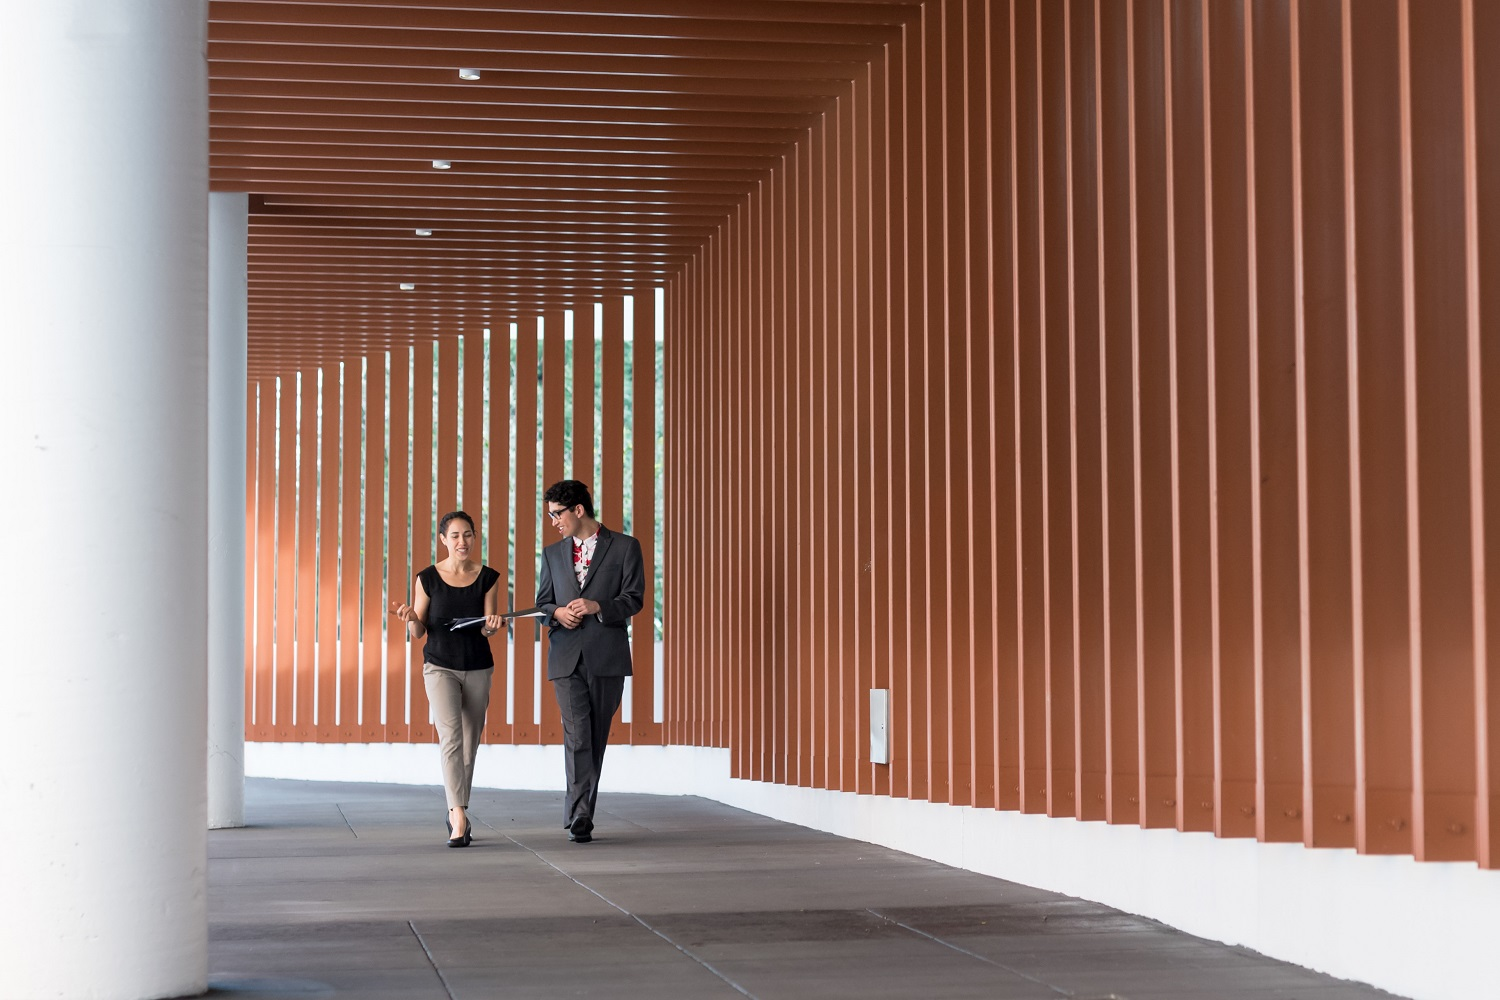 two people in business attire walking down an outdoor corridor having casual conversation